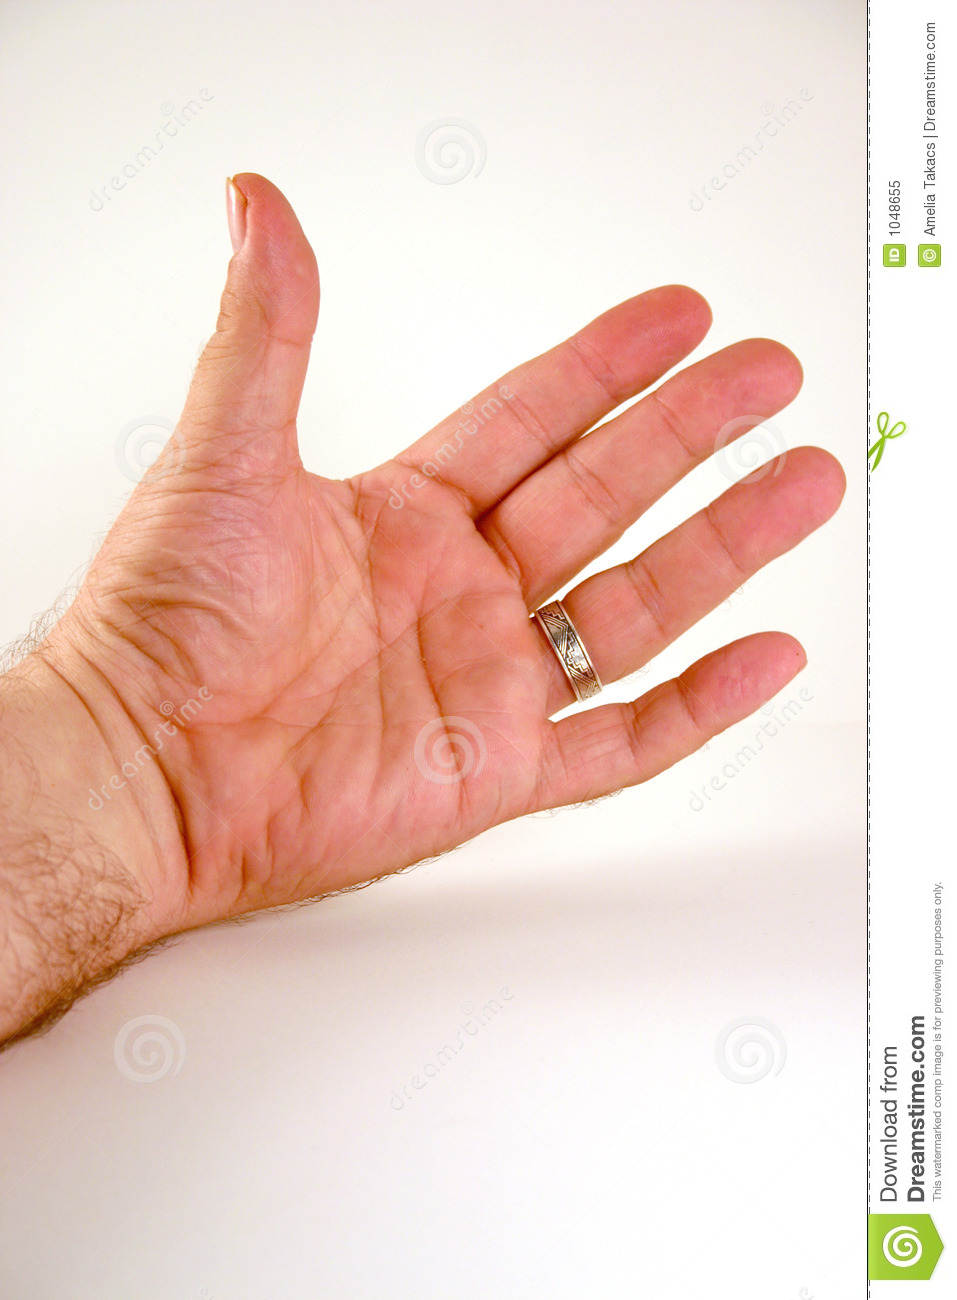 Left handed males